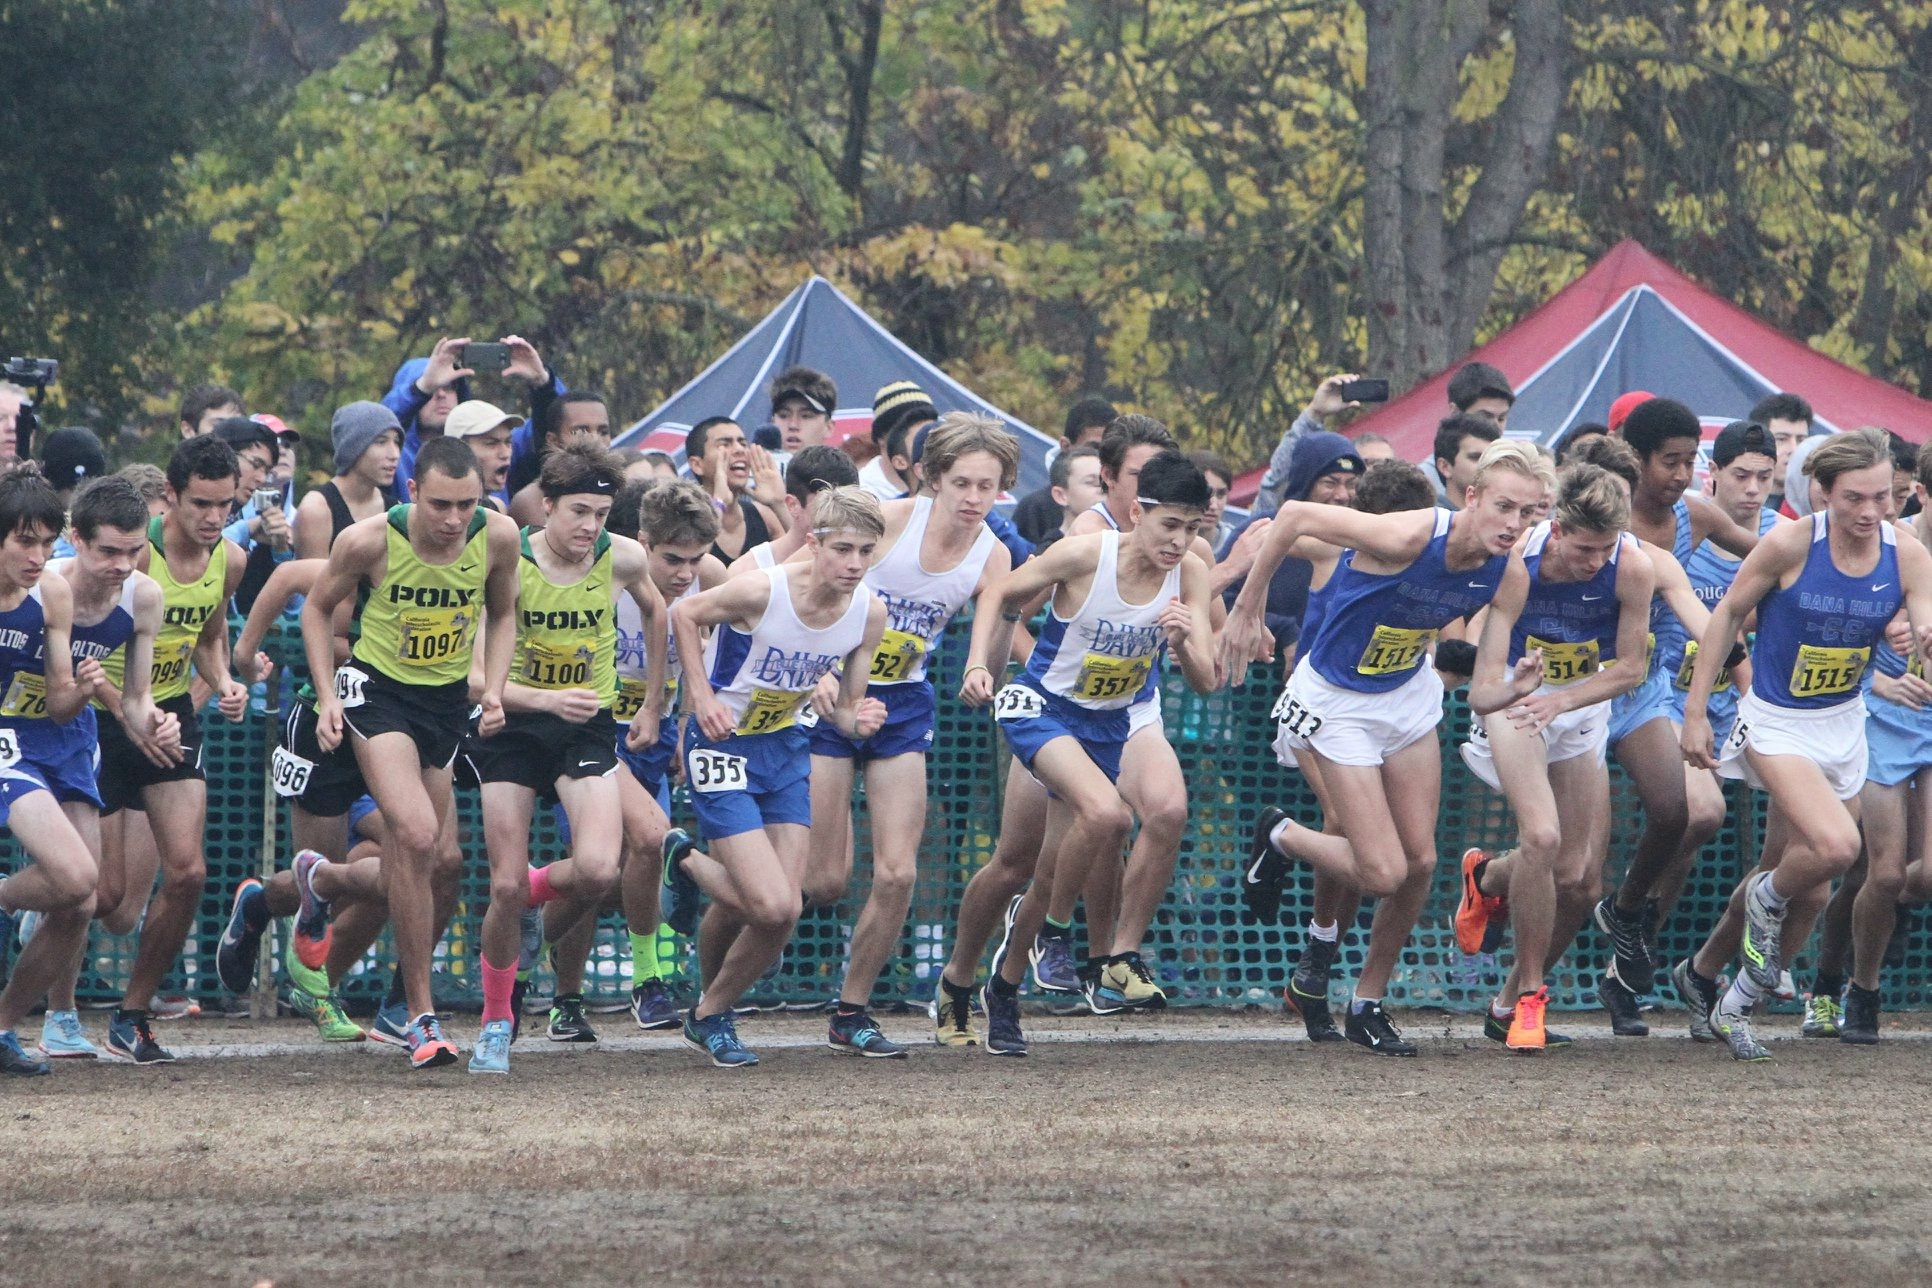 Women secure fifth, men 17th at cross country state meet